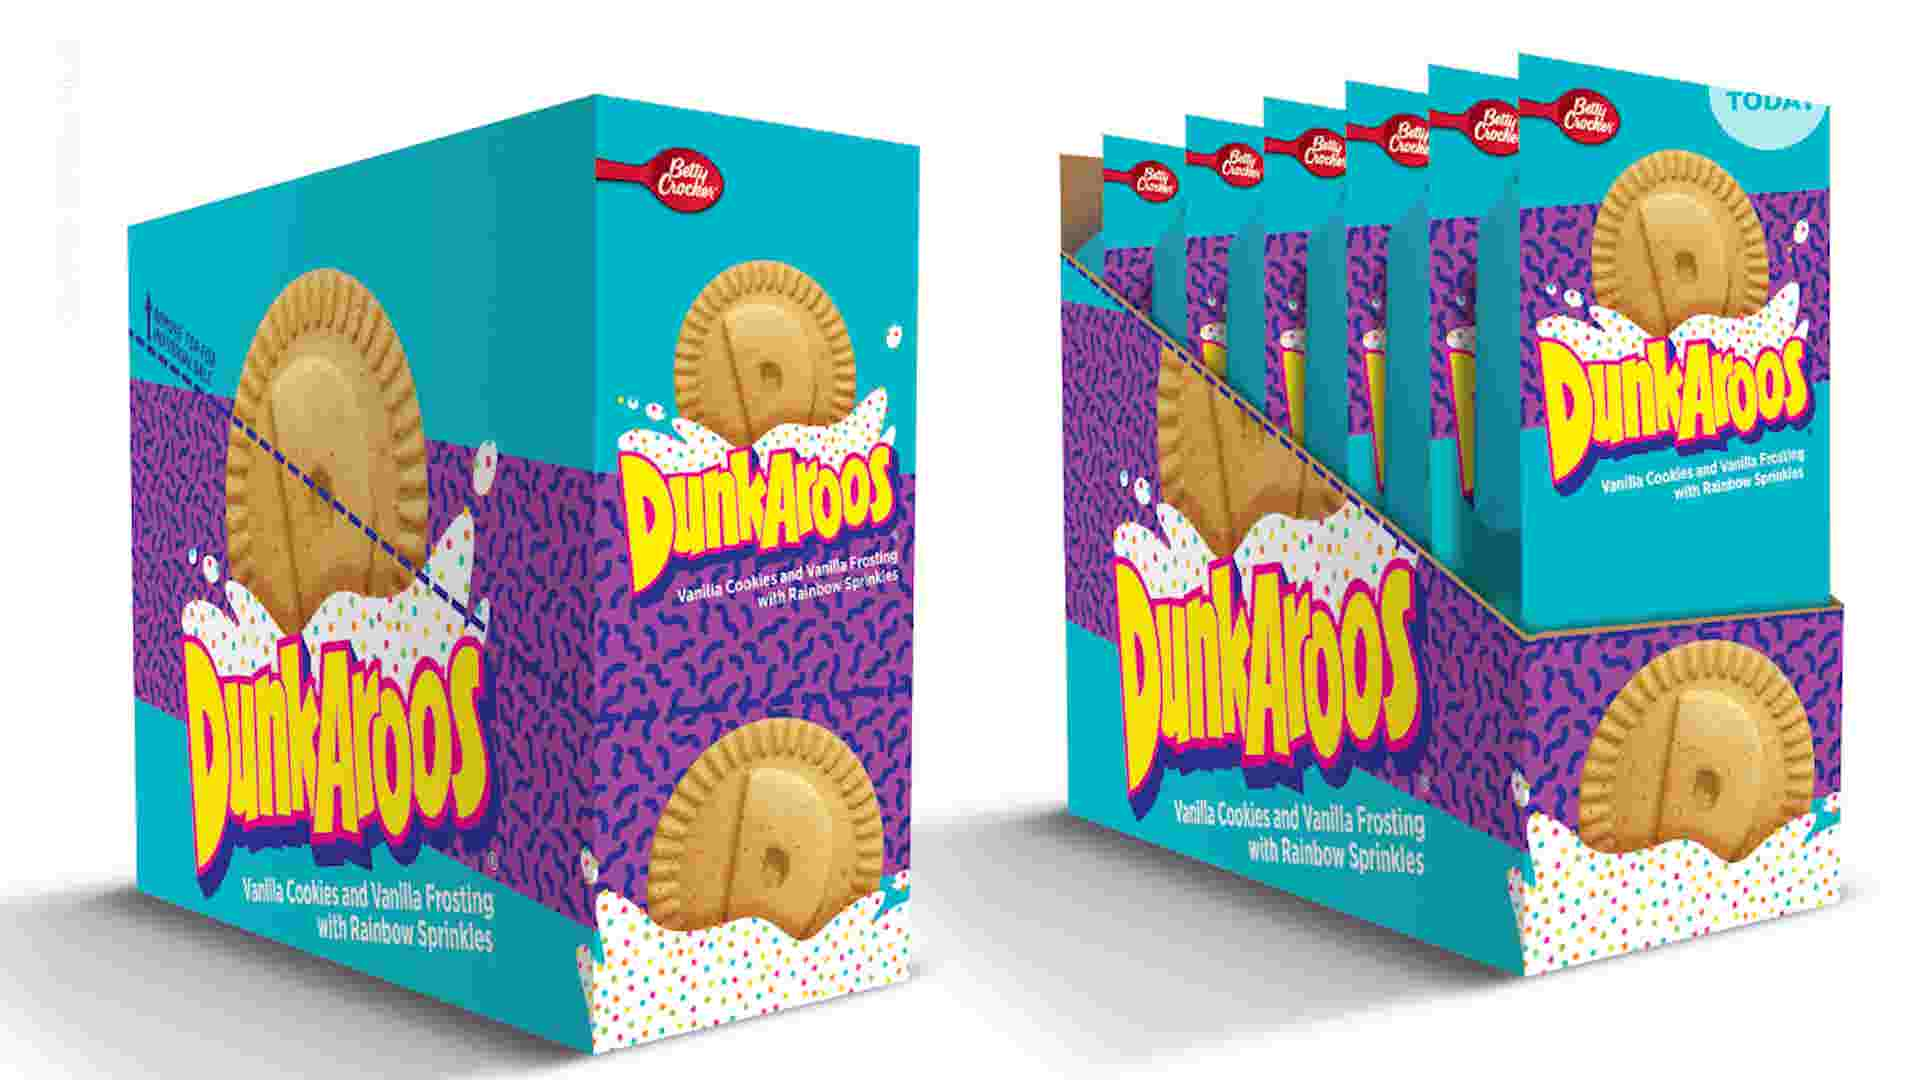 Popular '90s snack Dunkaroos is hitting stores this summer